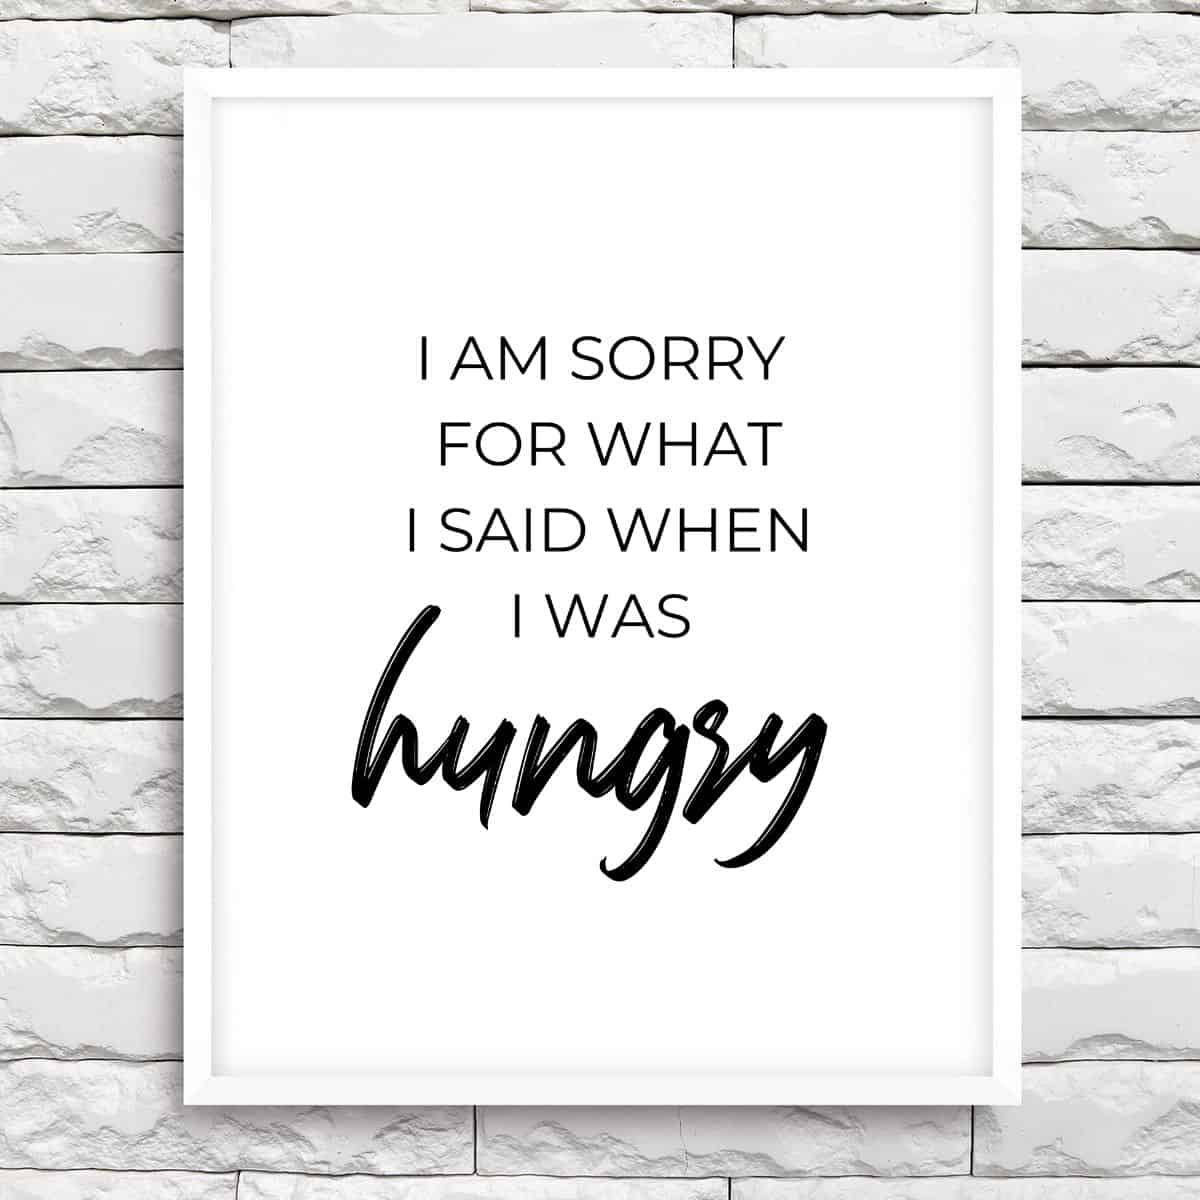 White frame on the brick wall with the text: I am sorry for what I said when I was hungry